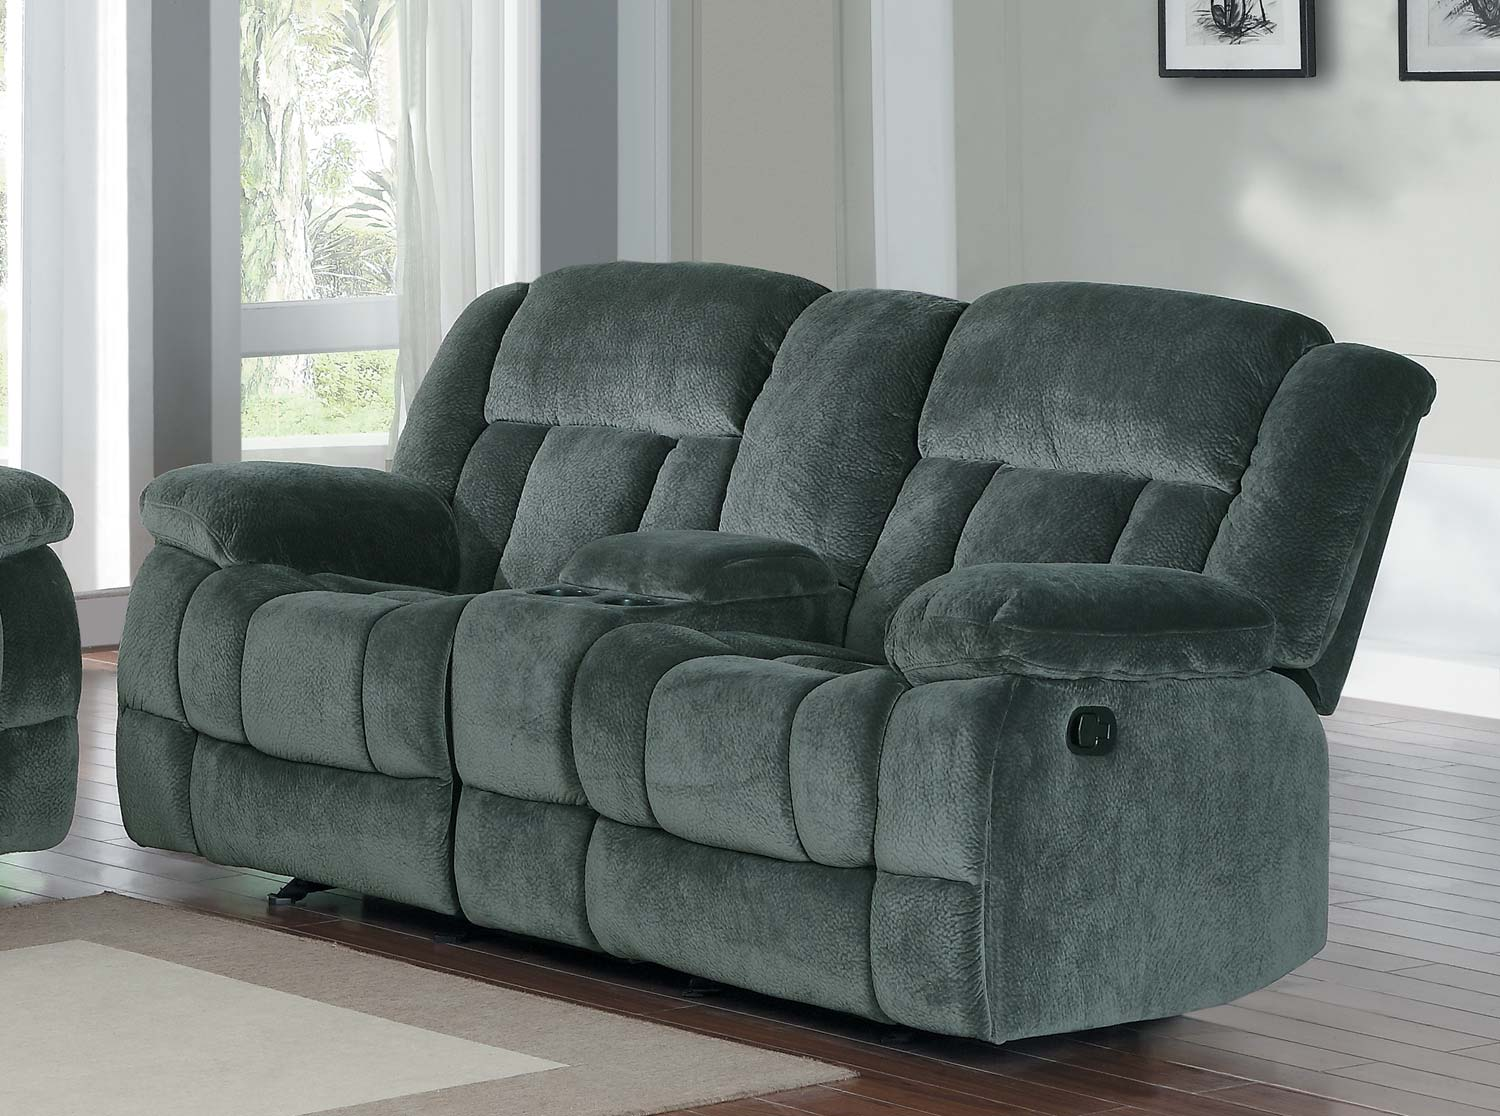 microfiber reclining loveseat with console homelegance laurelton double glider reclining love seat with center console UJOUPQY